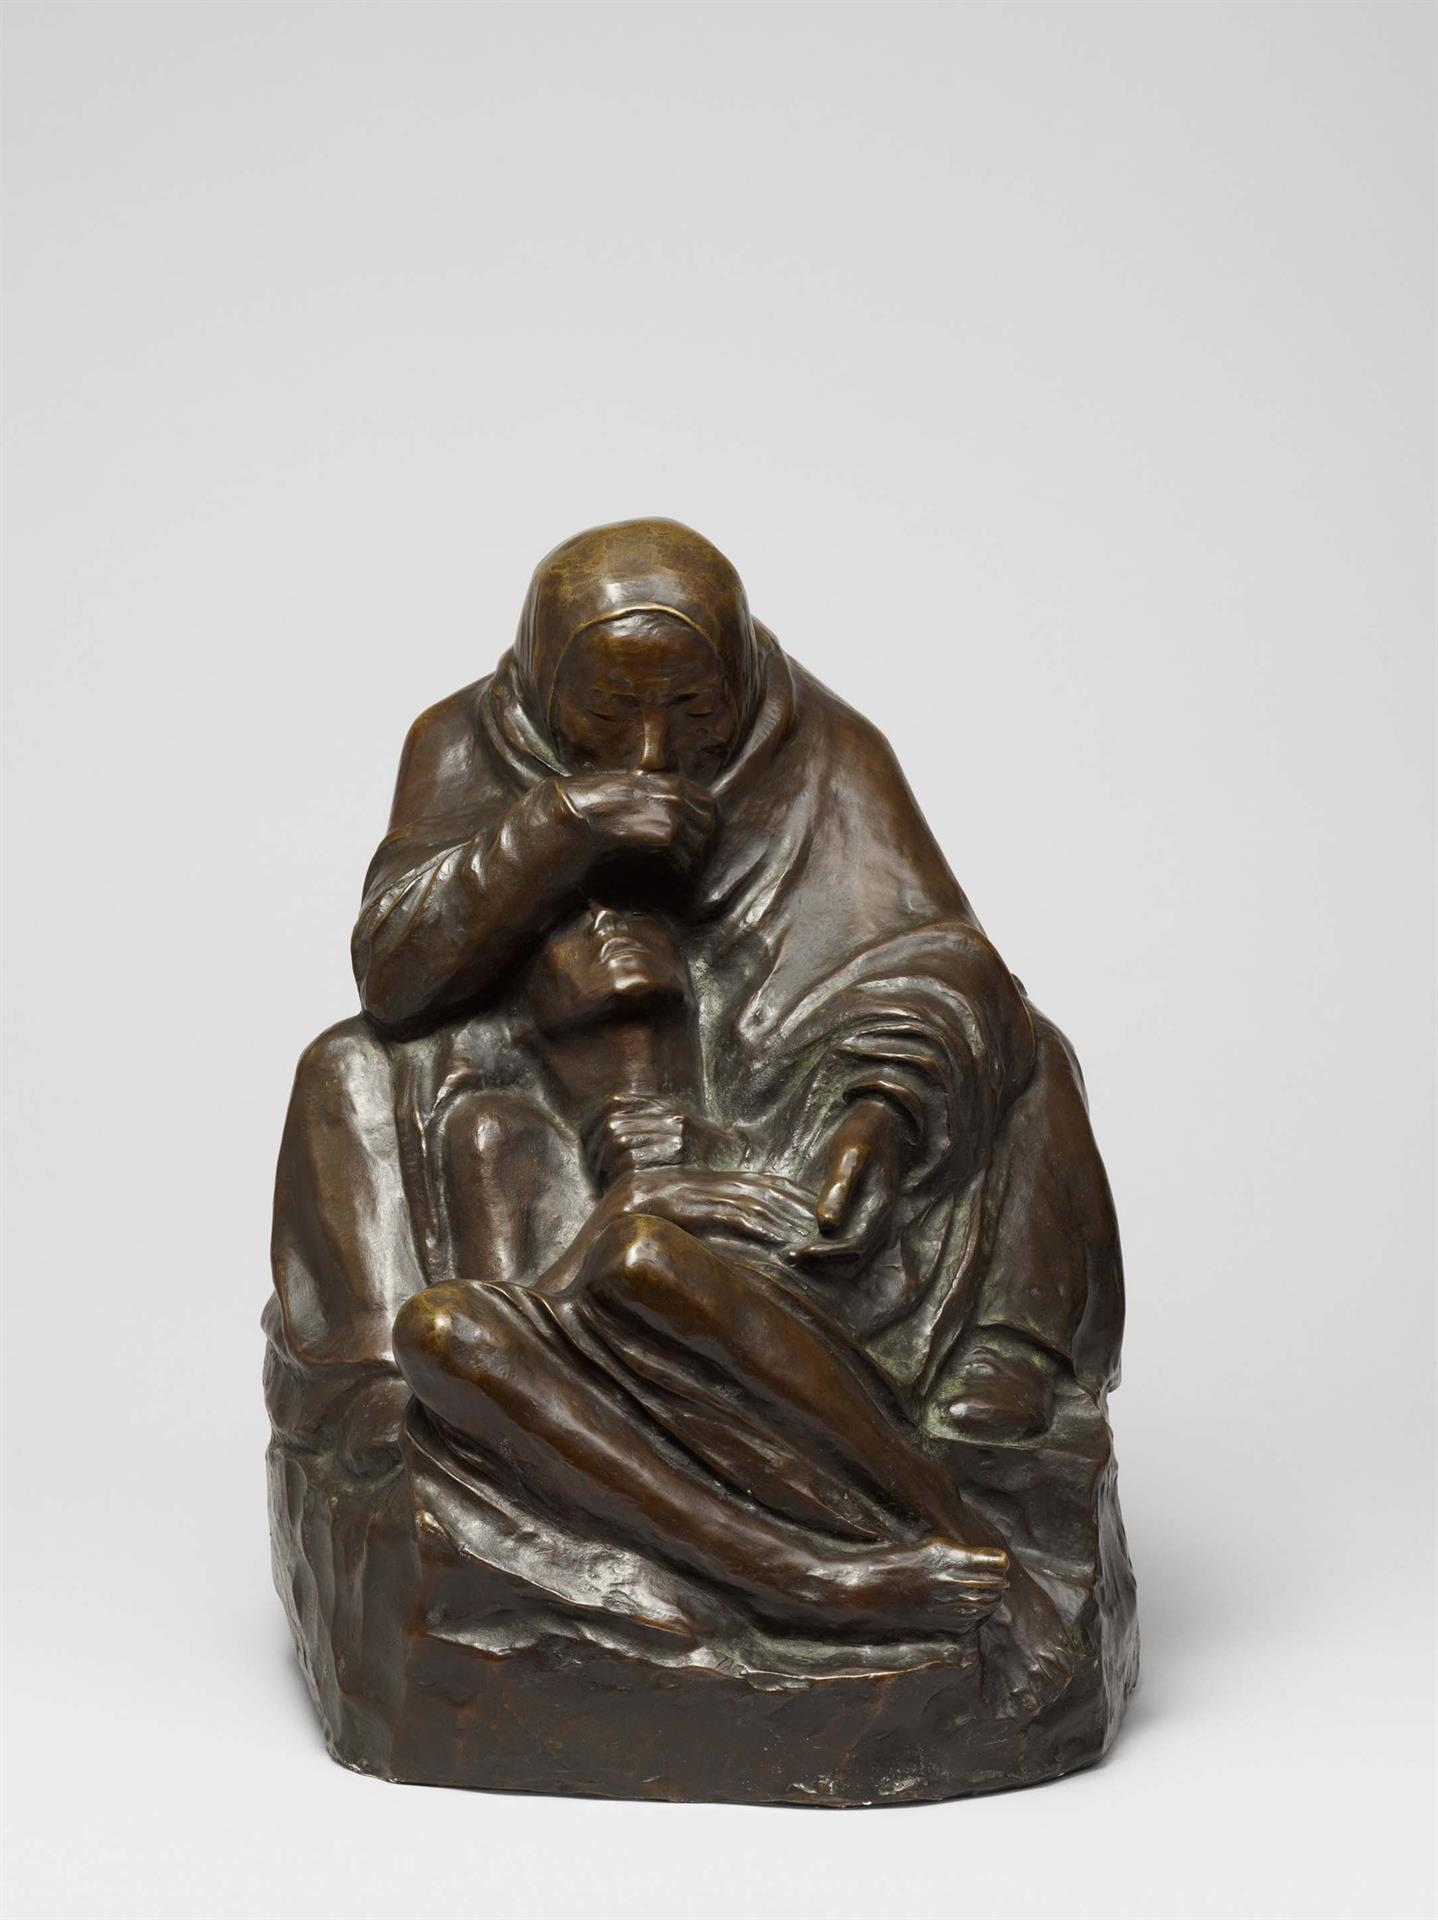 Käthe Kollwitz, Pietà (Mother with dead Son), 1937-1939, bronze, Seeler 37 II.B.1., Cologne Kollwitz Collection © Käthe Kollwitz Museum Köln